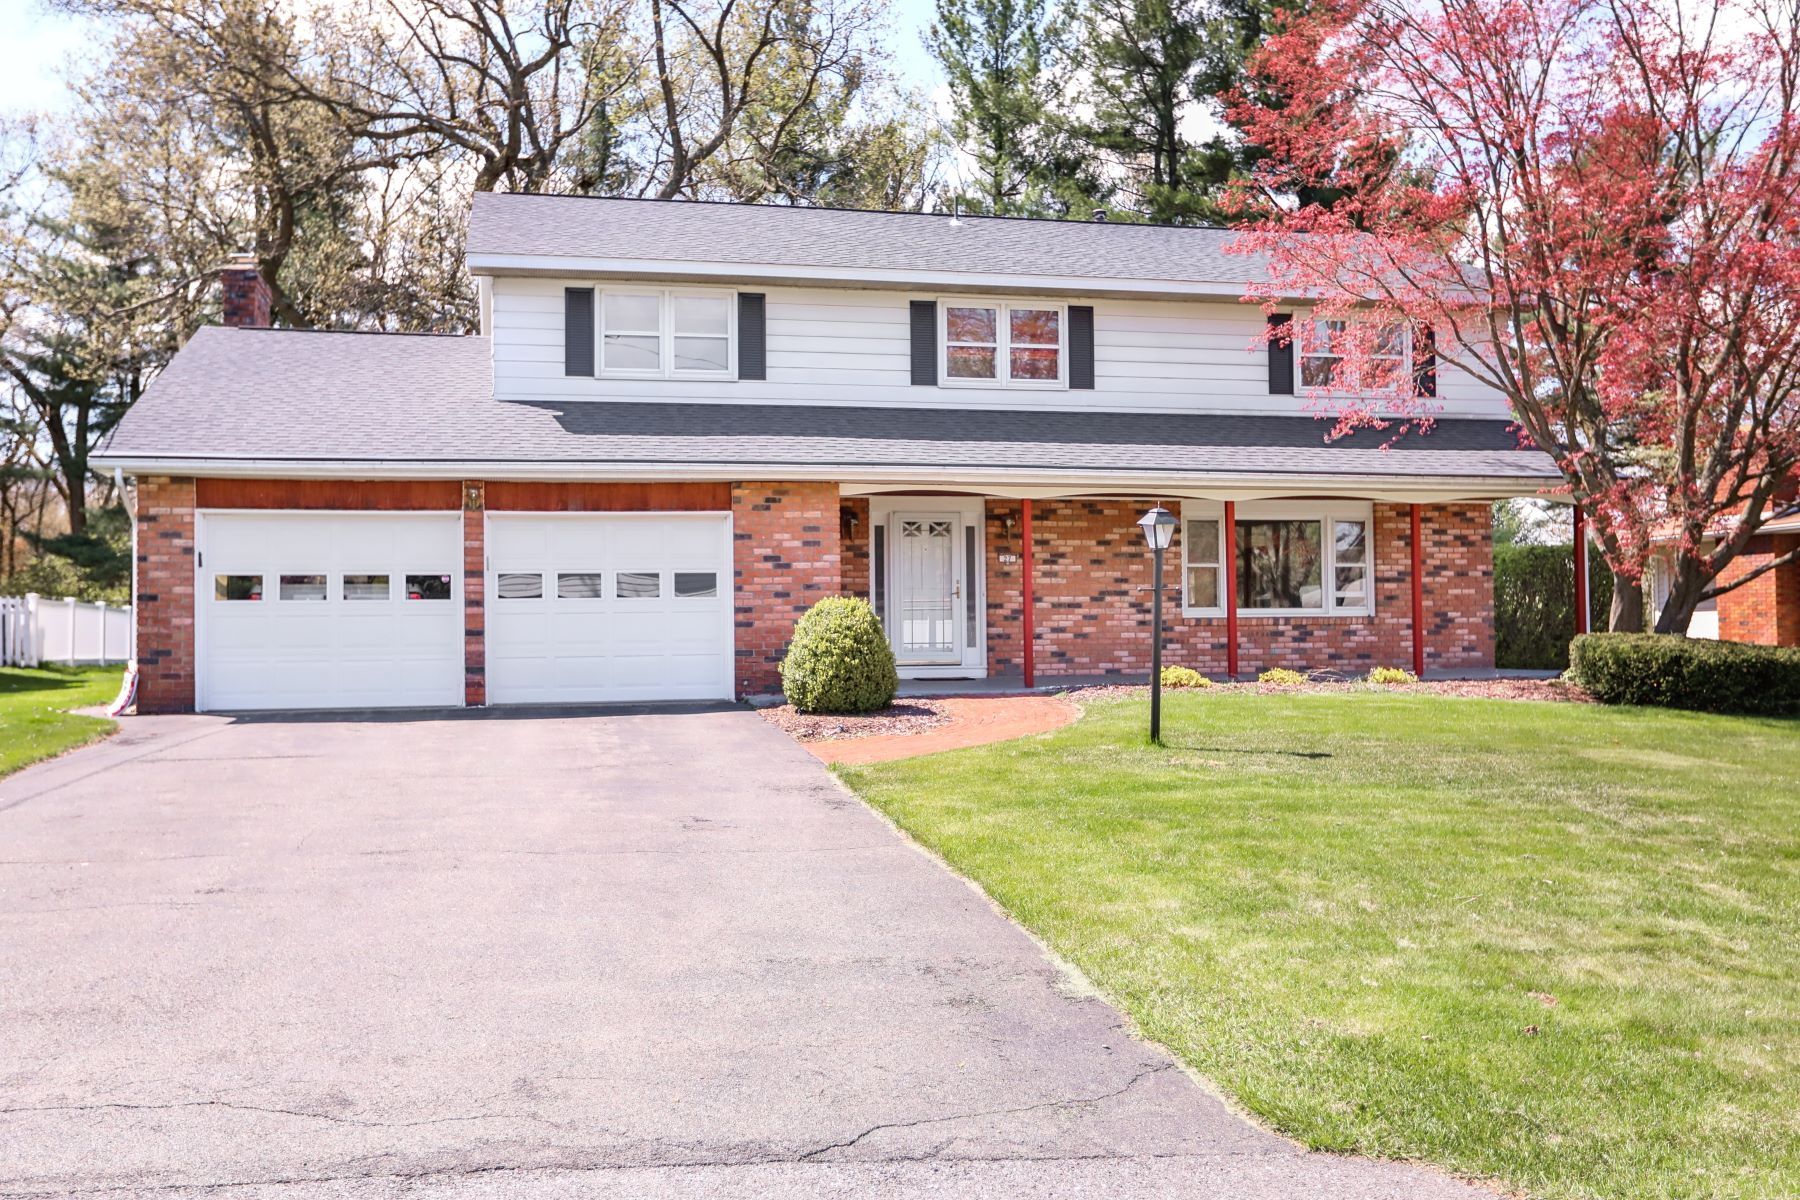 Single Family Homes for Active at 27 Tower Heights, Albany, NY 12211 27 Tower Heights Albany, New York 12211 United States